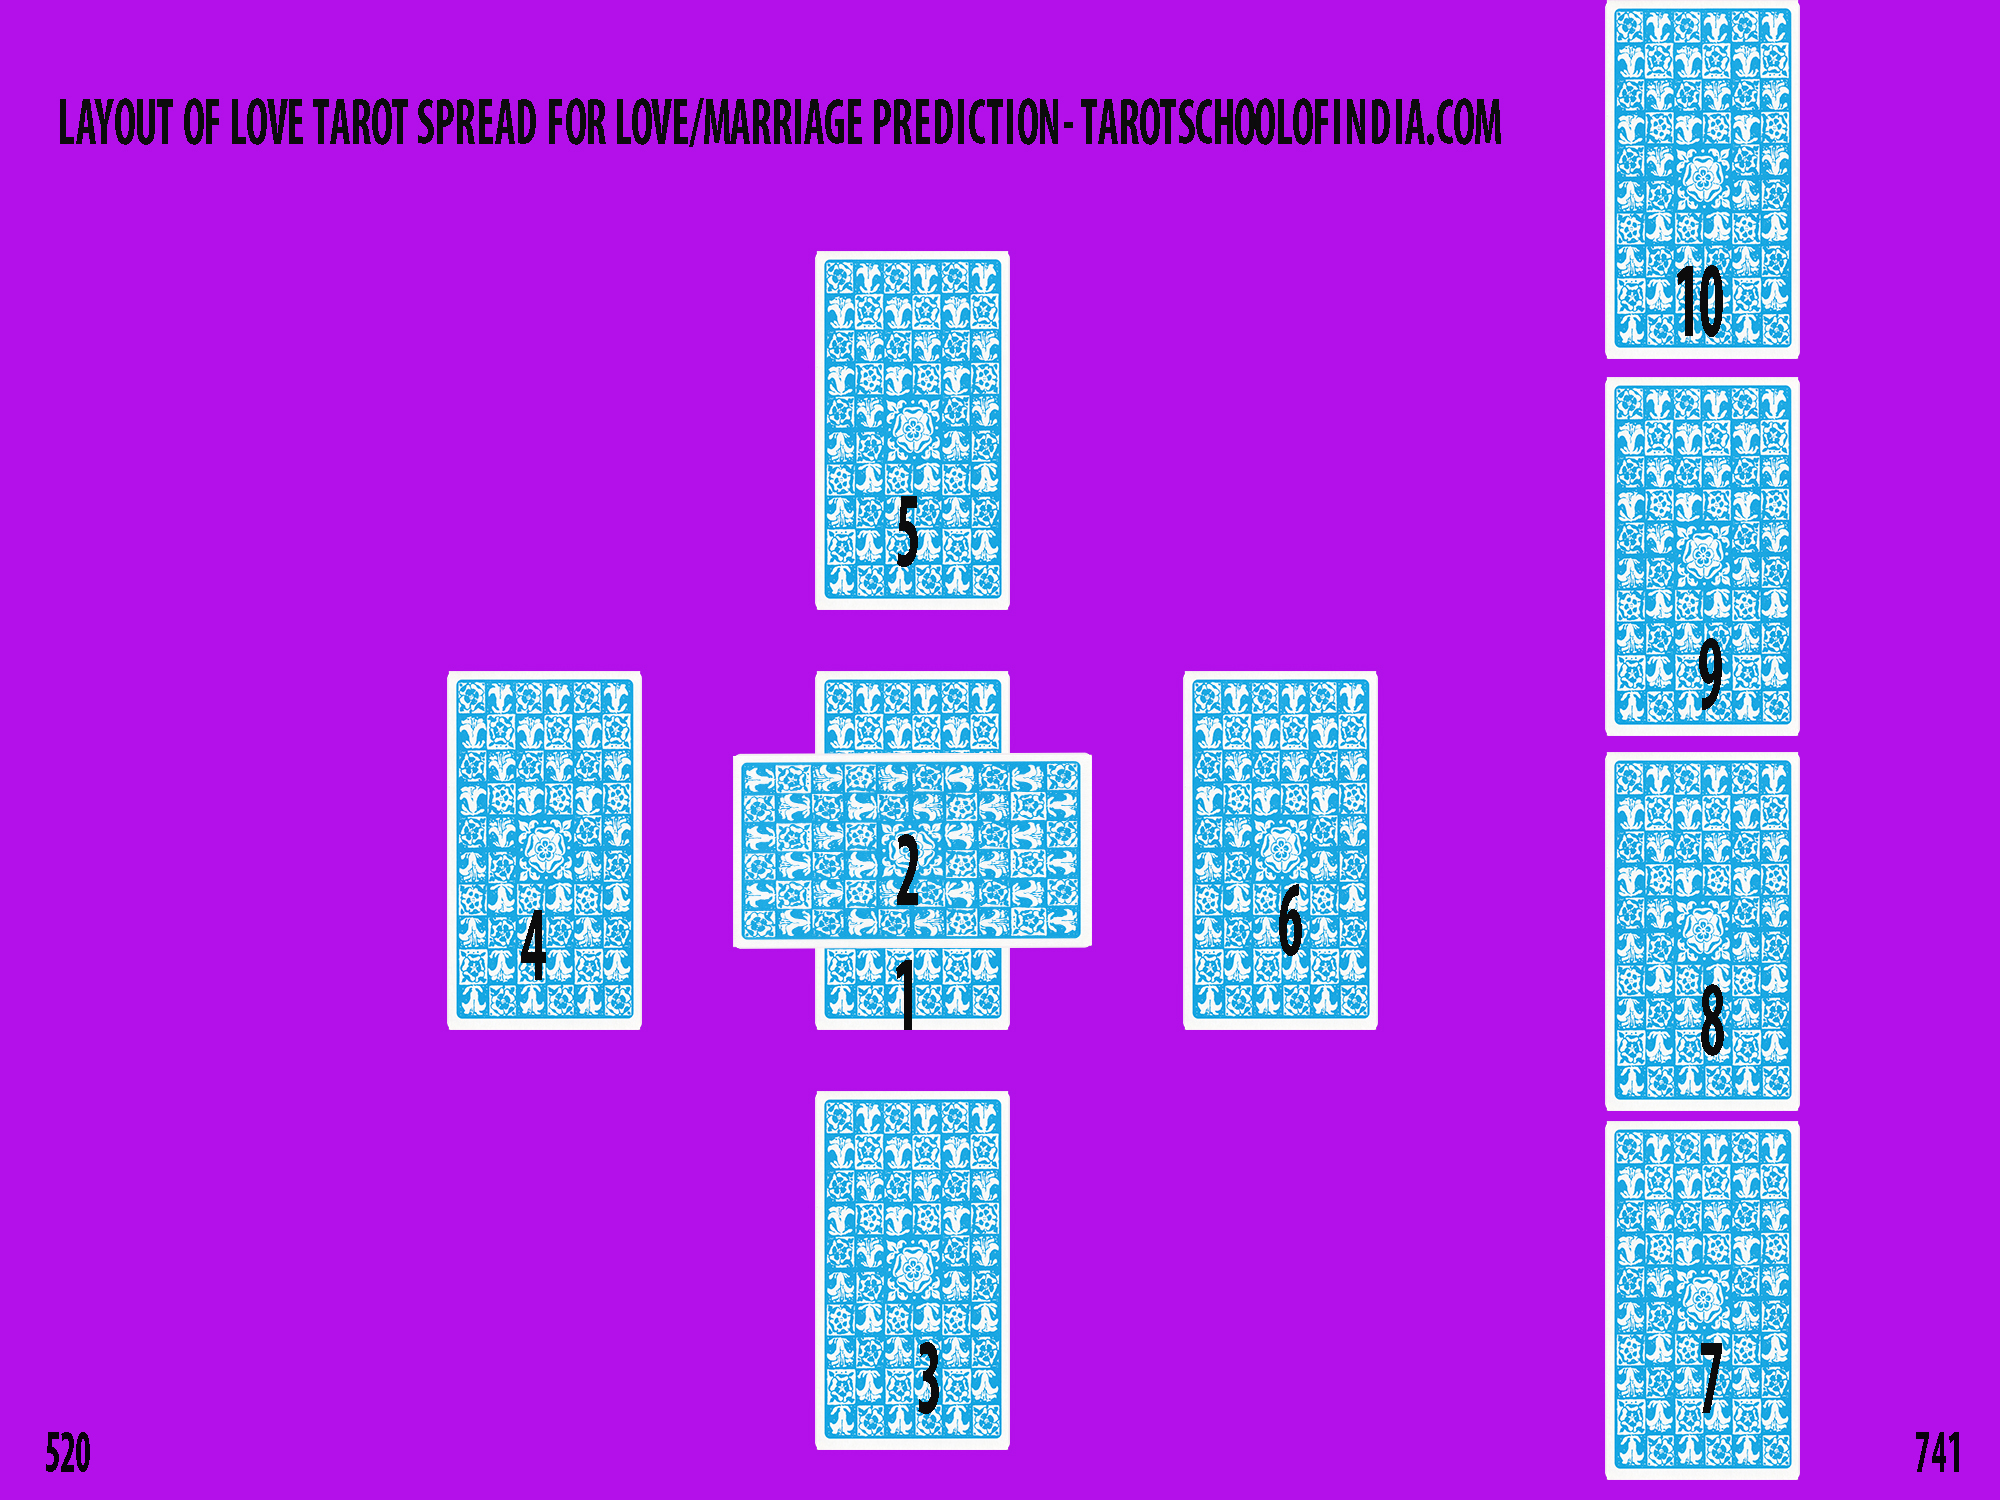 Layout of Love Tarot Spread for Love-Marriage Prediction